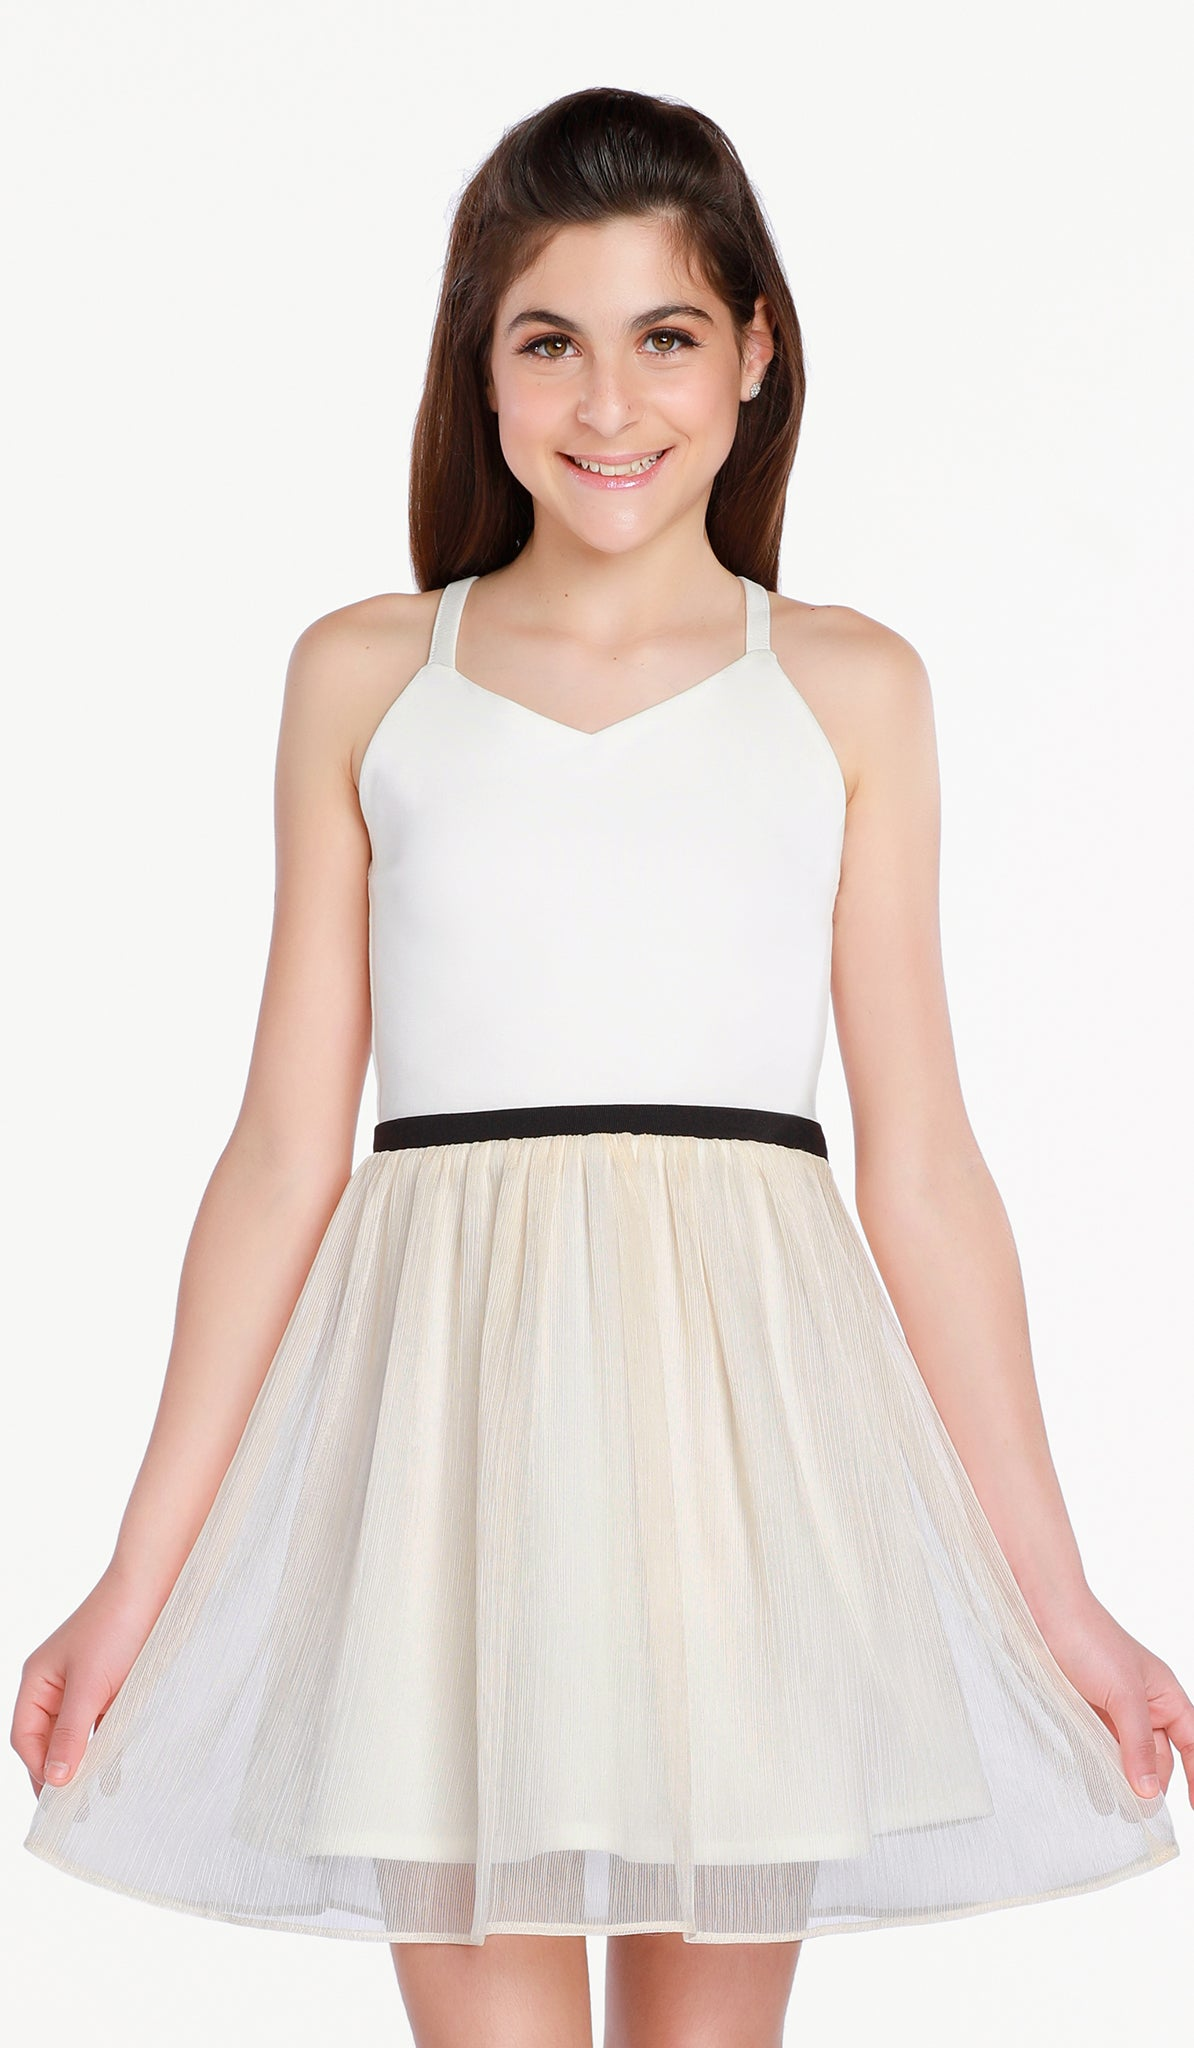 THE EMMIE DRESS - Sallymiller.com - [variant title] - | Event & Party Dresses for Tween Girls & Juniors | Weddings Dresses, Bat Mitzvah Dresses, Sweet Sixteen Dresses, Graduation Dresses, Birthday Party Dresses, Bar Mitzvah Dresses, Cotillion Dresses